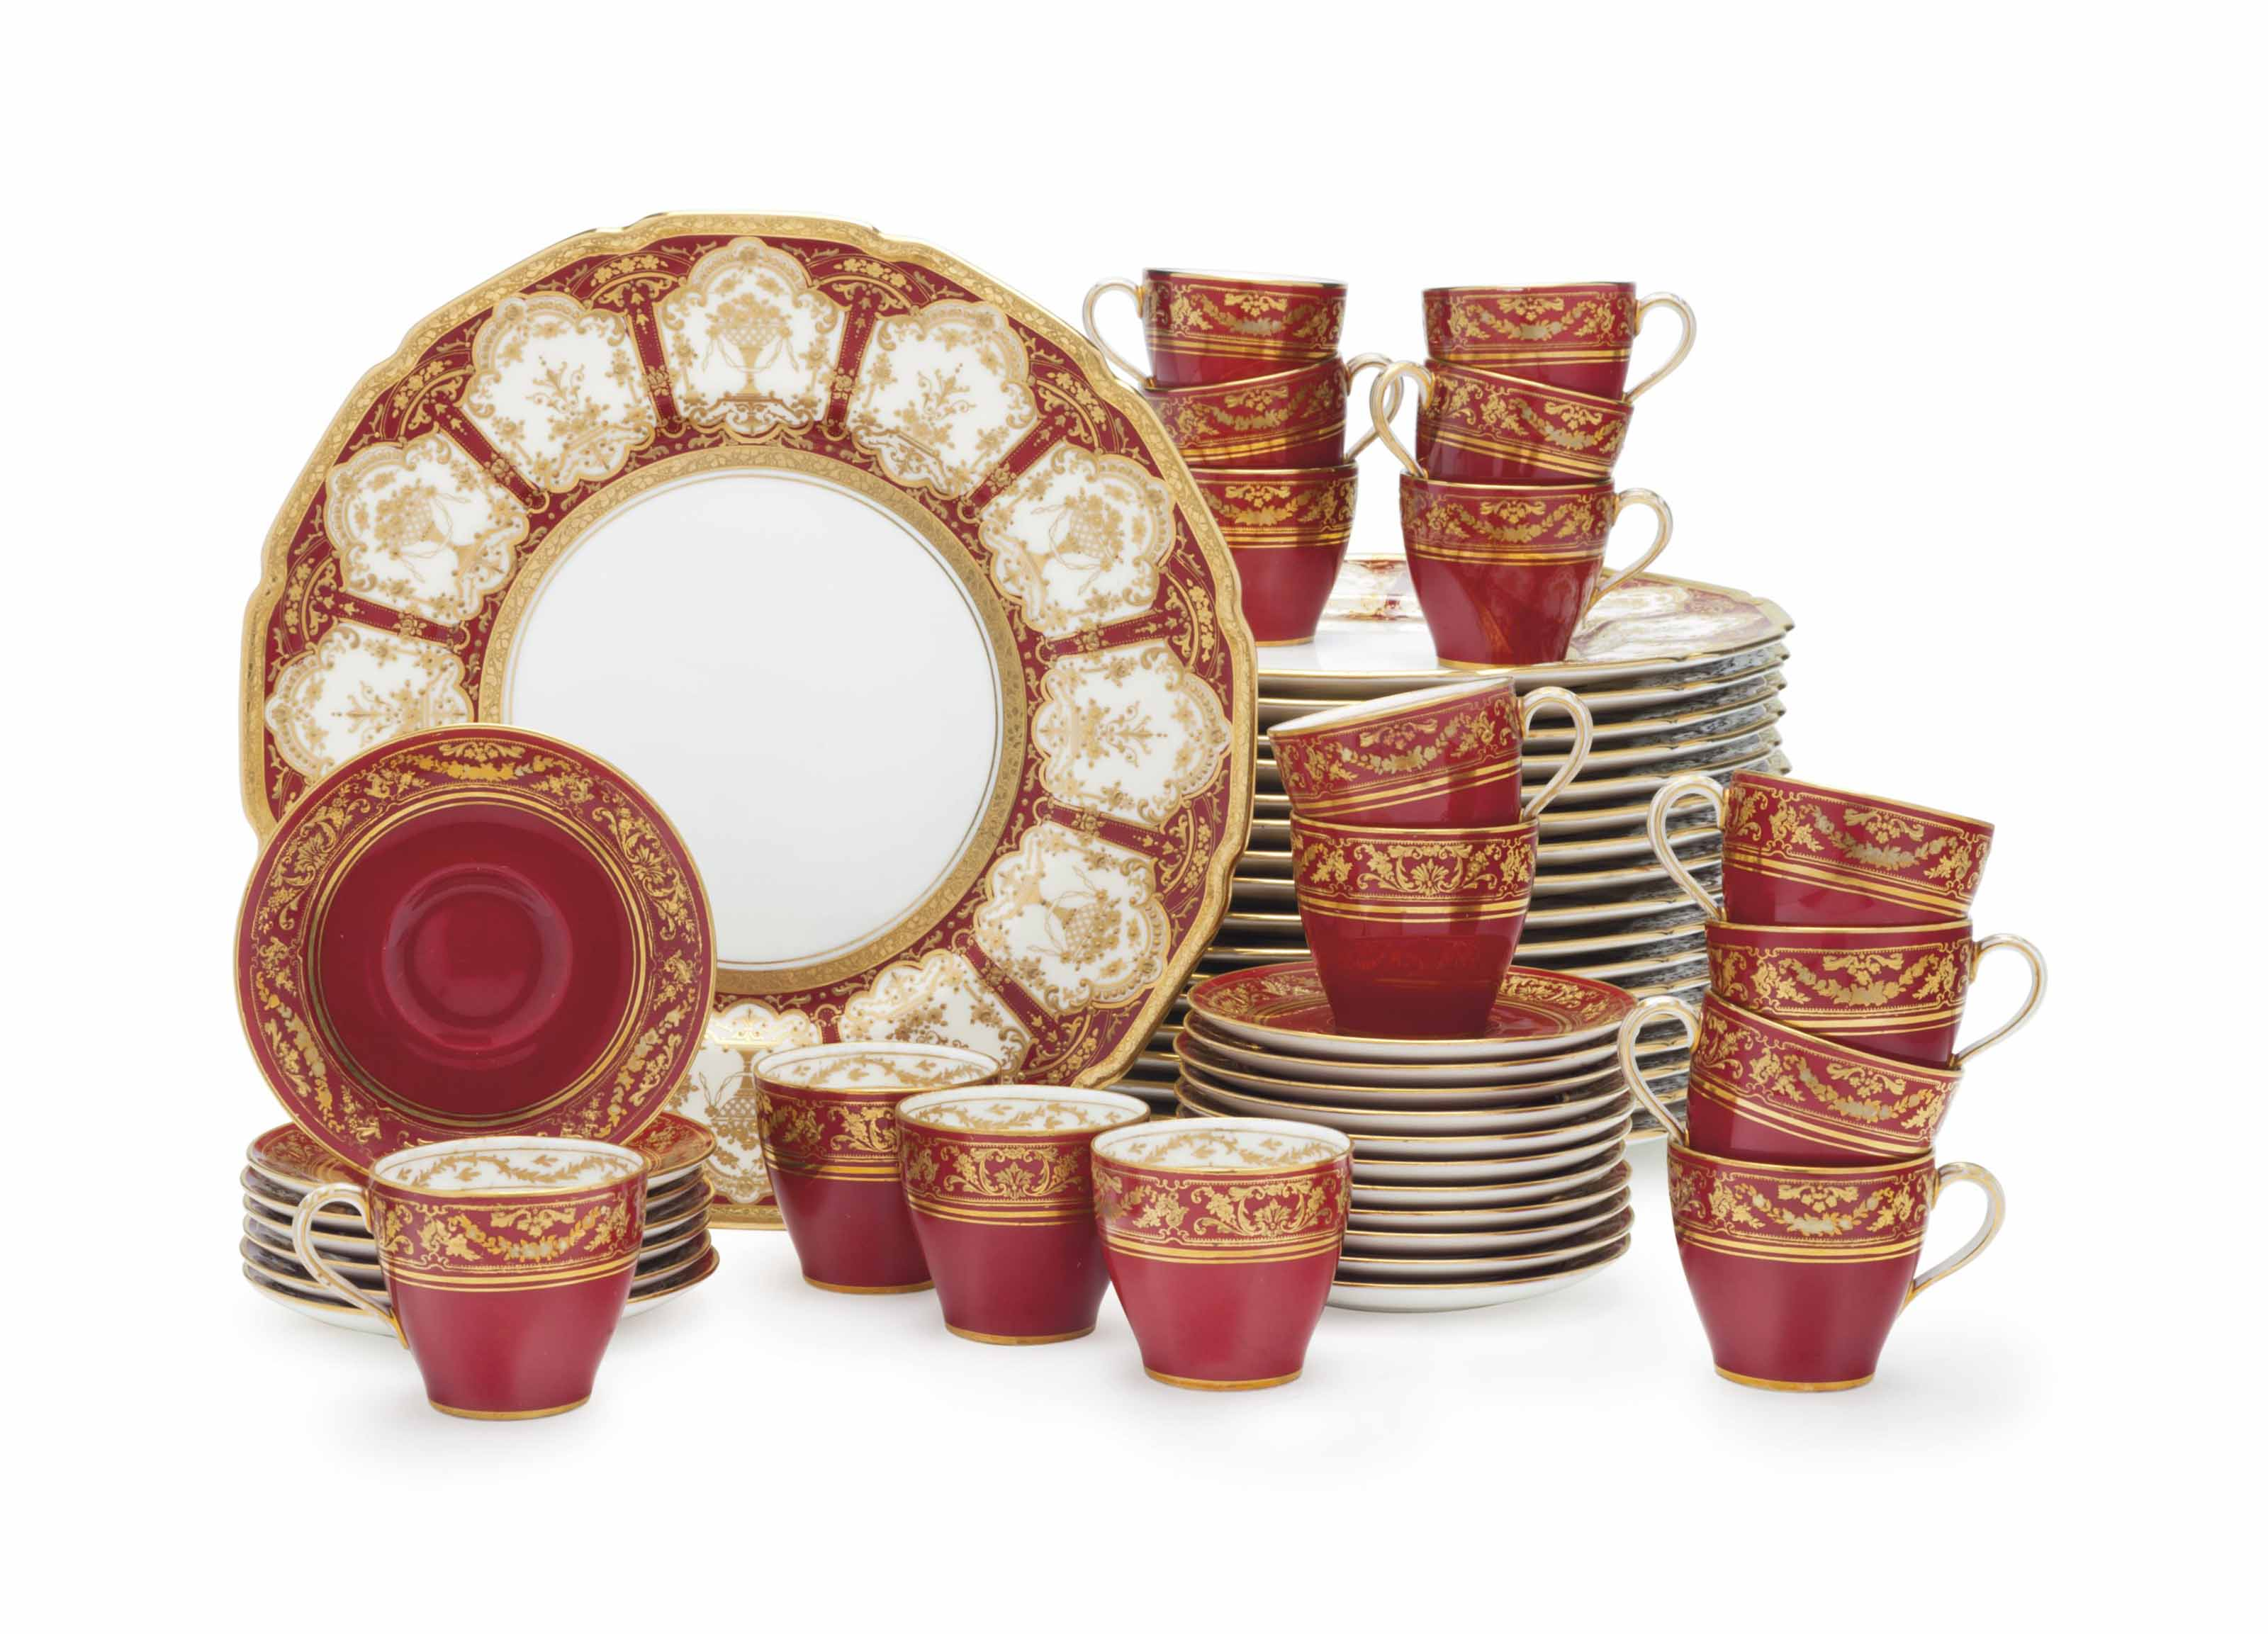 A SET OF EIGHTEEN ROYAL DOULTON PORCELAIN CLARET-GROUND SERVICE PLATES AND EIGHTEEN COFFEE CUPS AND SAUCERS